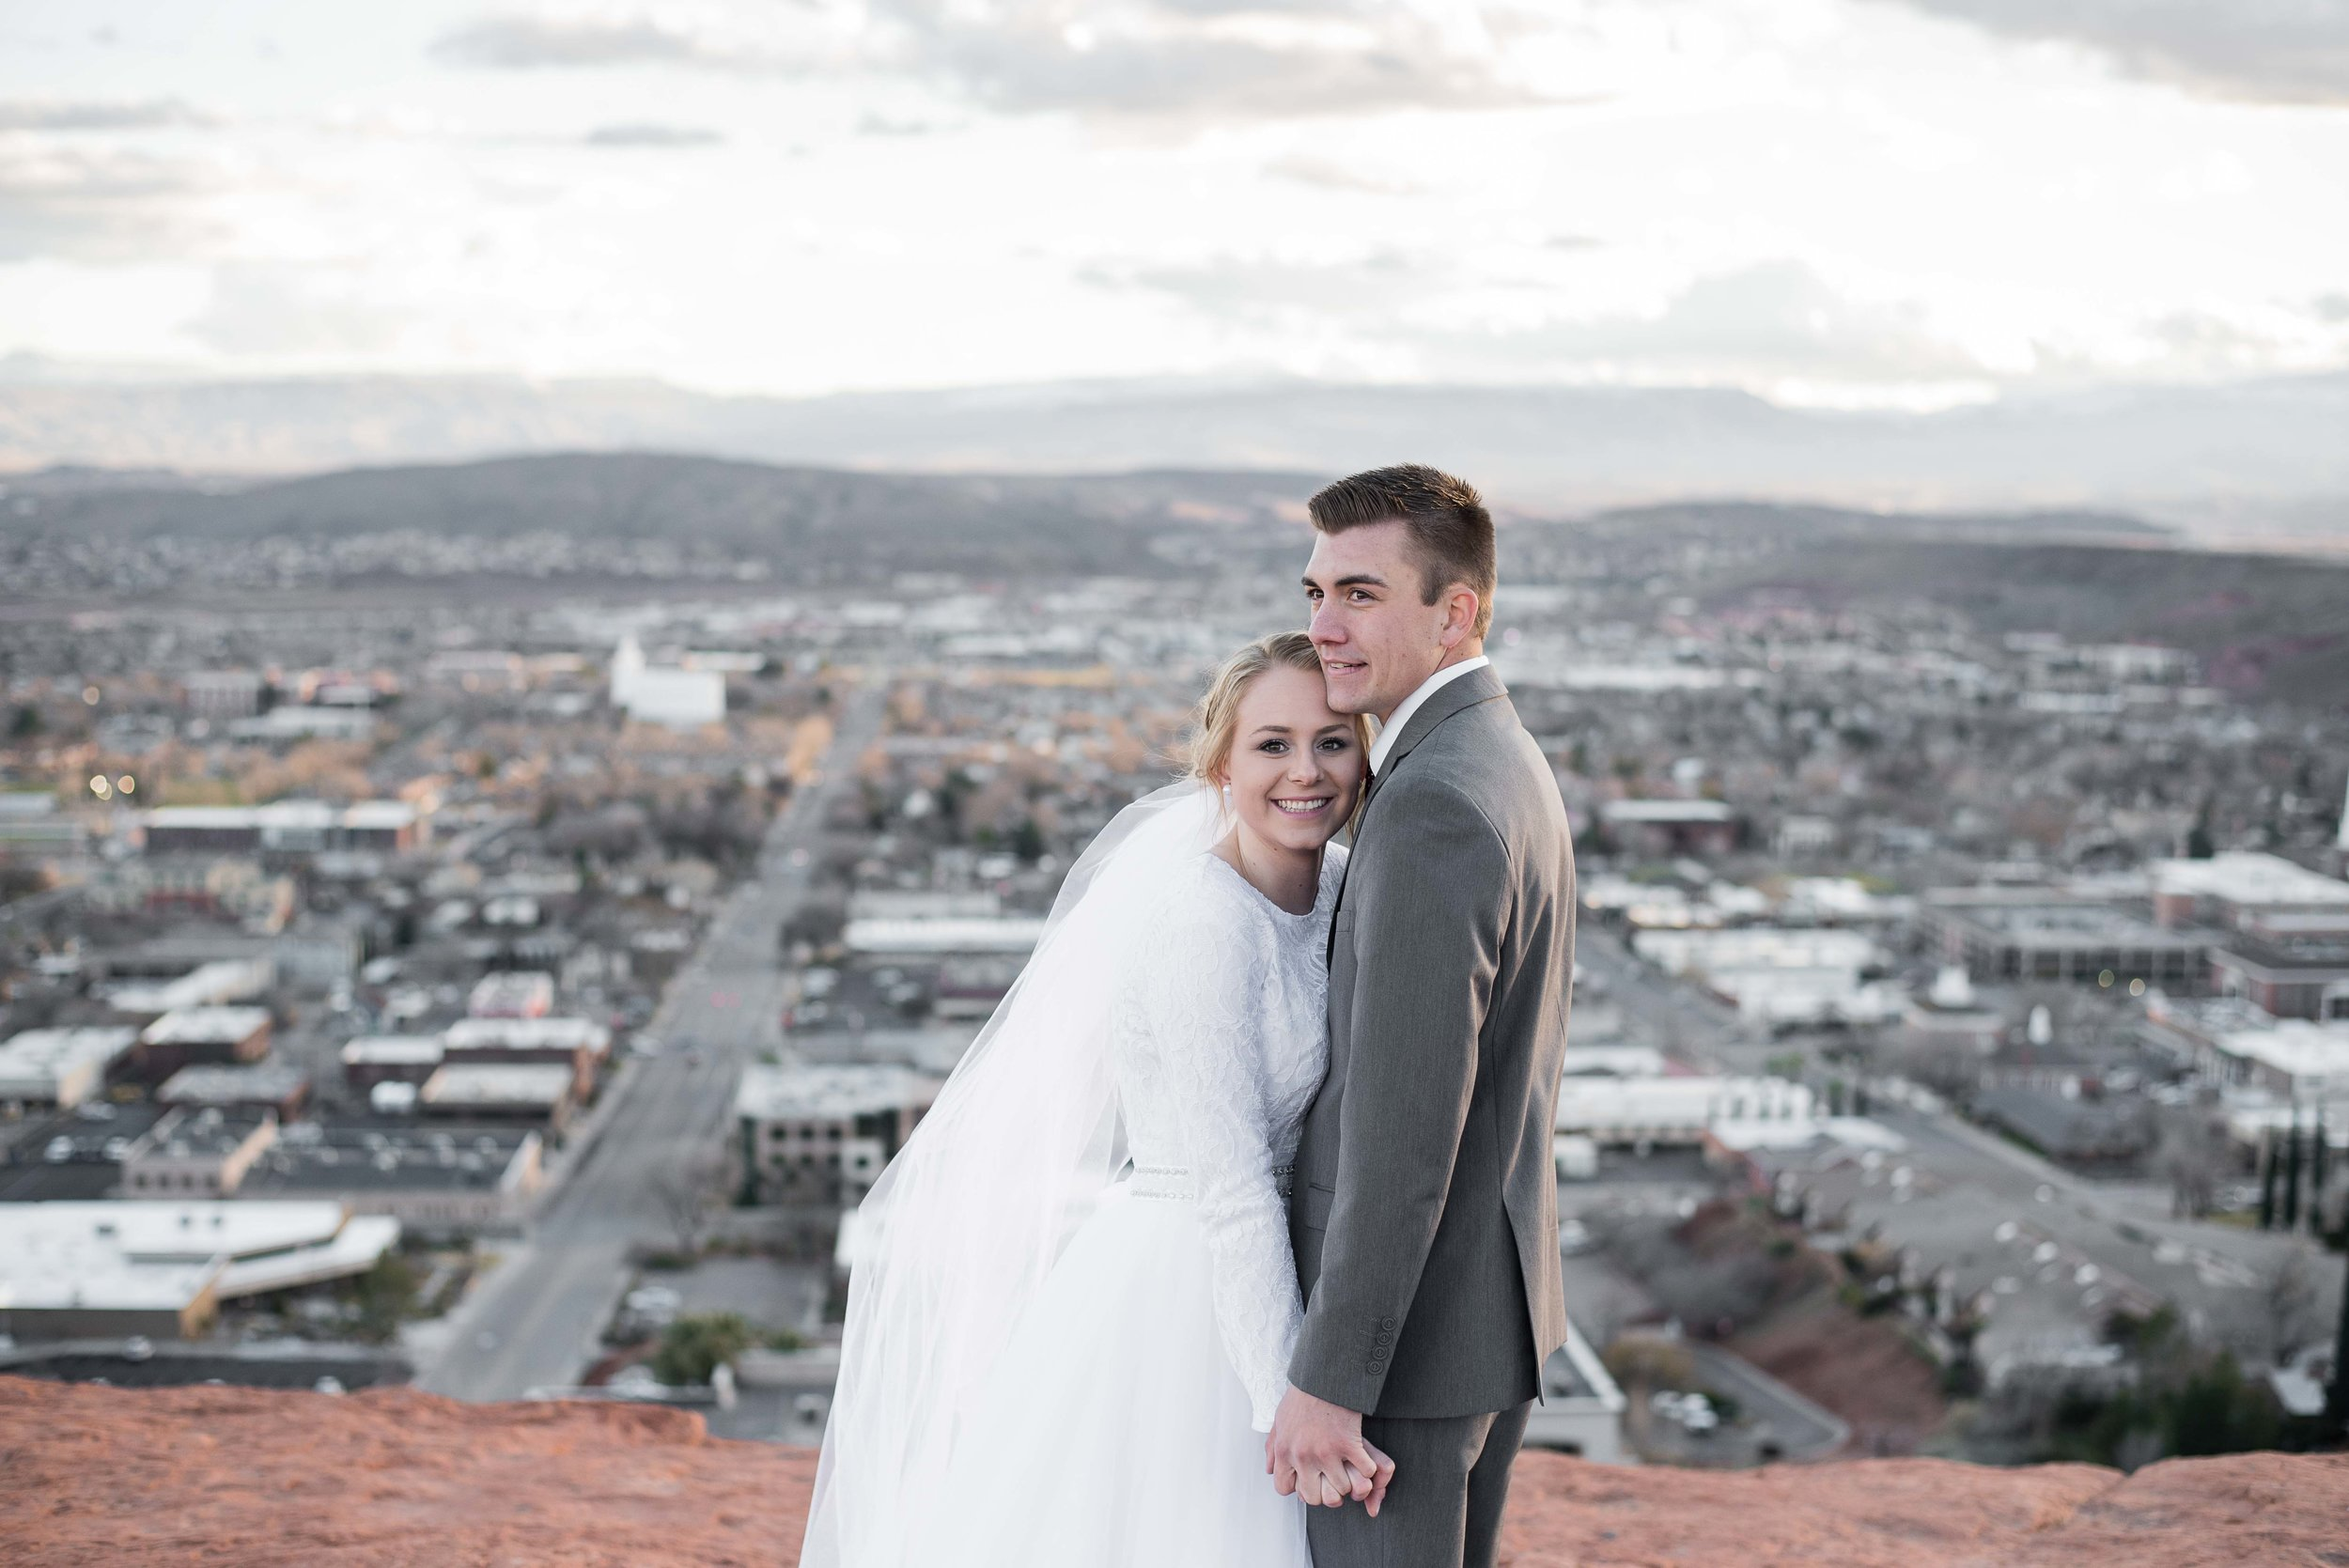 Braxton+Kaycee-BRIDALS-Sadie-Banks-Photography-224.jpg